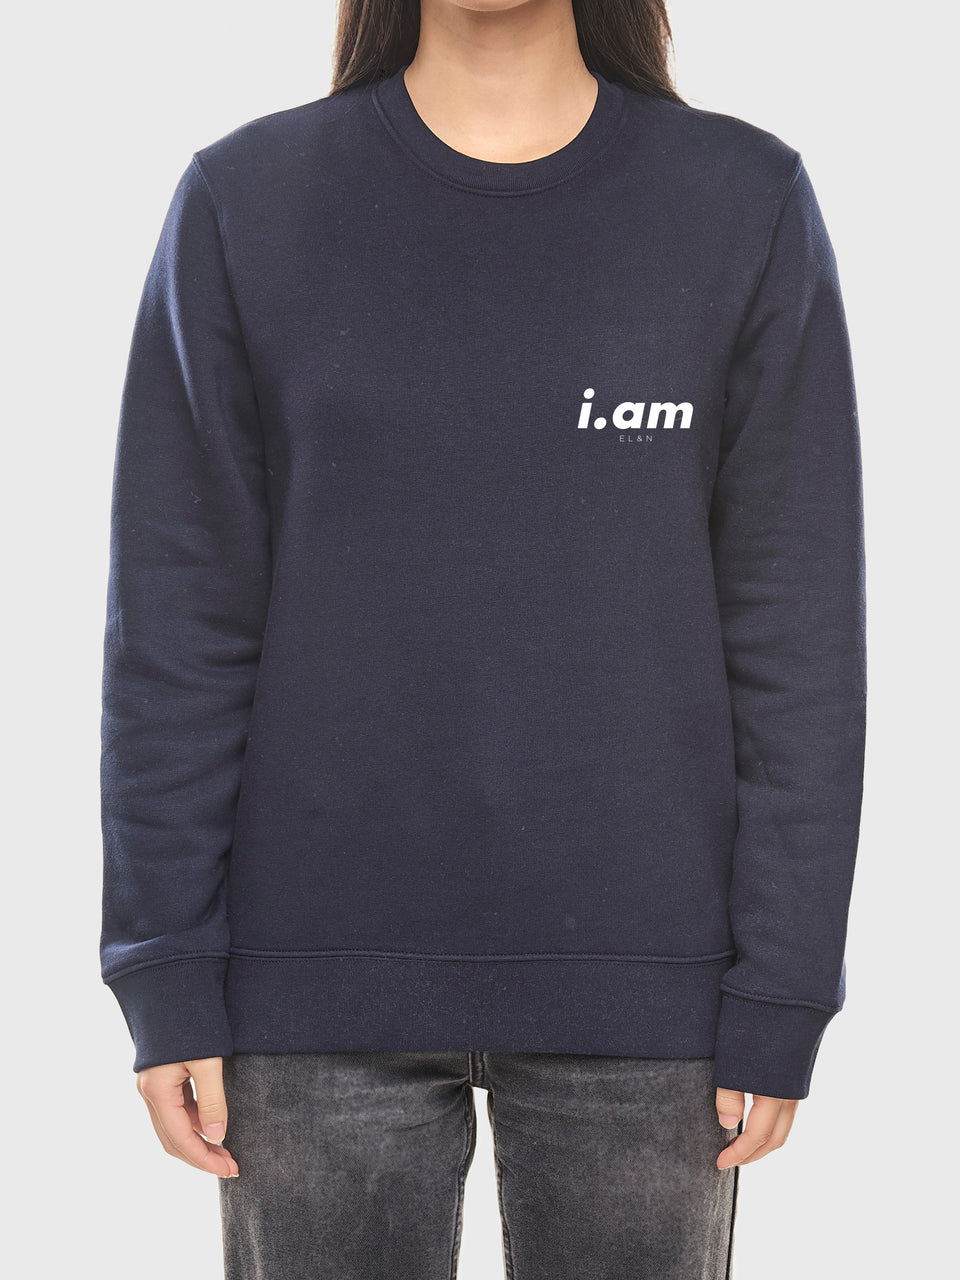 I am who I am - Navy - Unisex sweatshirt